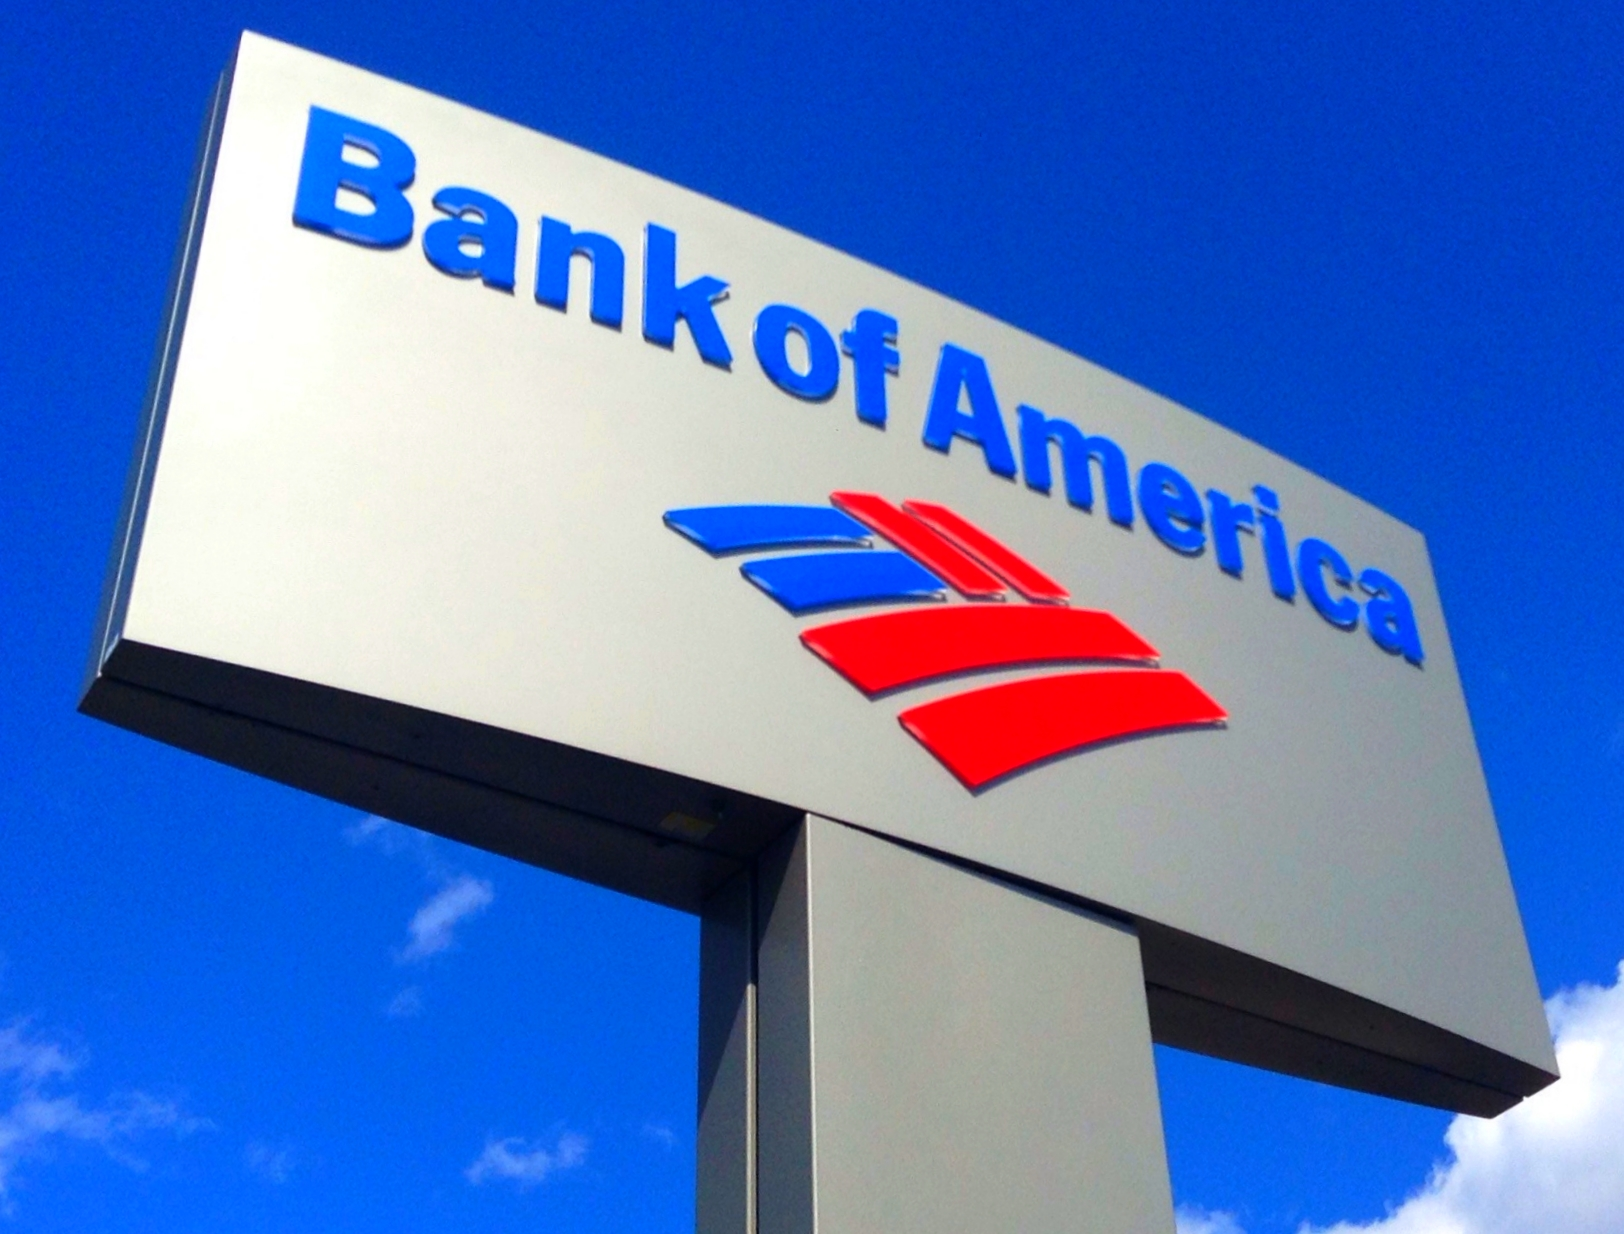 Bank of America sign with logo